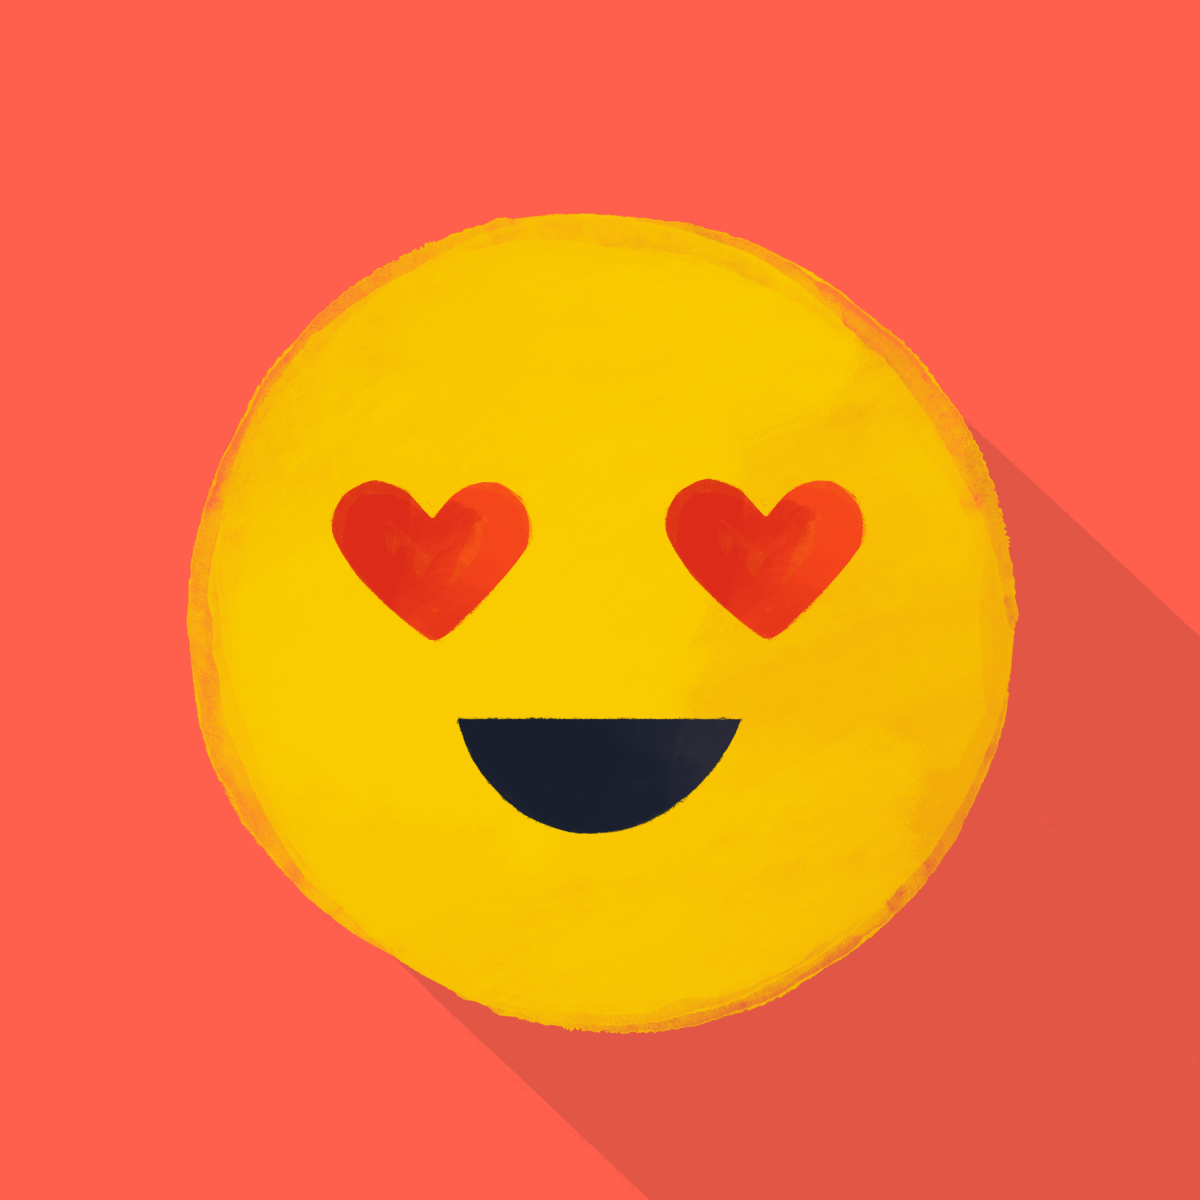 2-Emoji-Reimagined-Smiling_Face_With_Heart-Eyes-Kiwani-Dolean